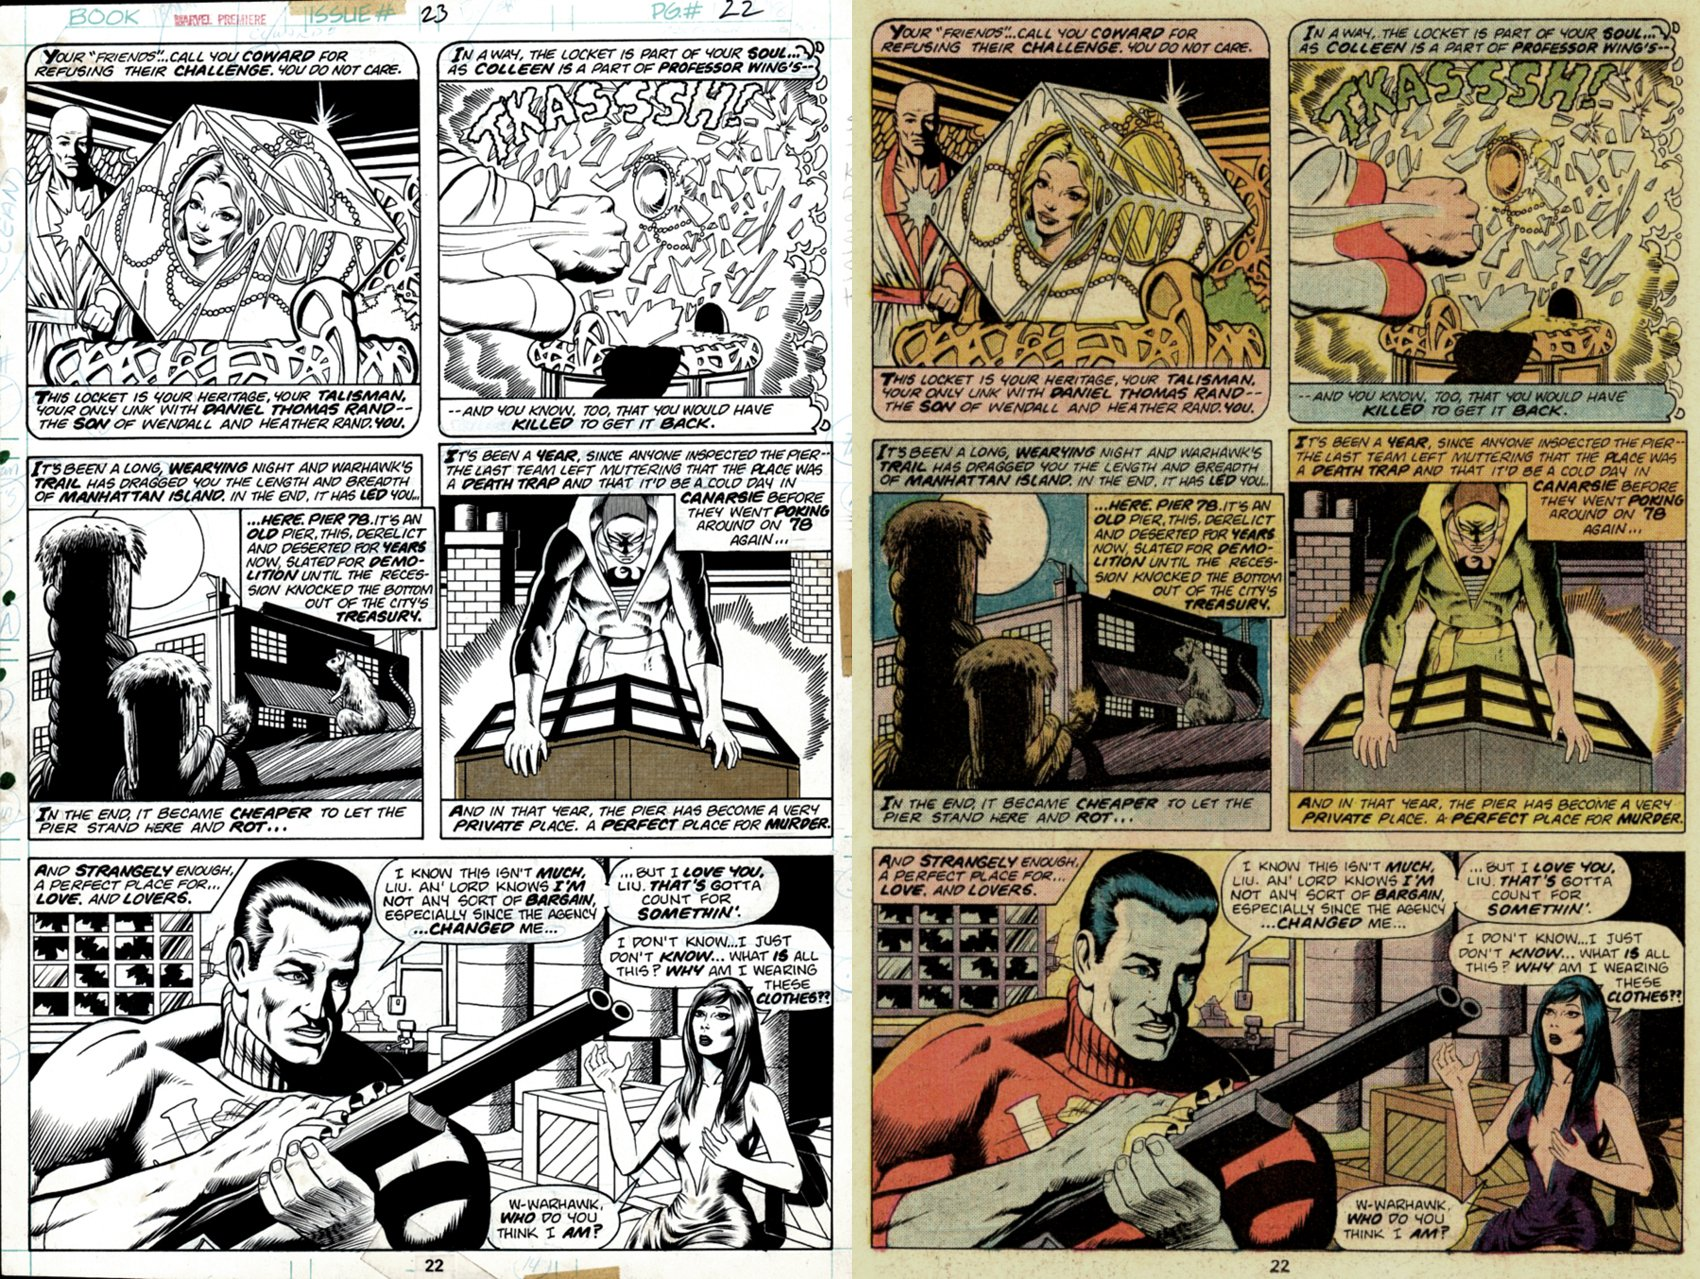 Marvel Premiere #23 p 22 (SOLD LIVE ON 'DUELING DEALERS OF COMIC ART' EPISODE #26 PODCAST ON 7-21-2021 (RE-WATCH THIS FUNNY ART SELLING SHOW HERE)